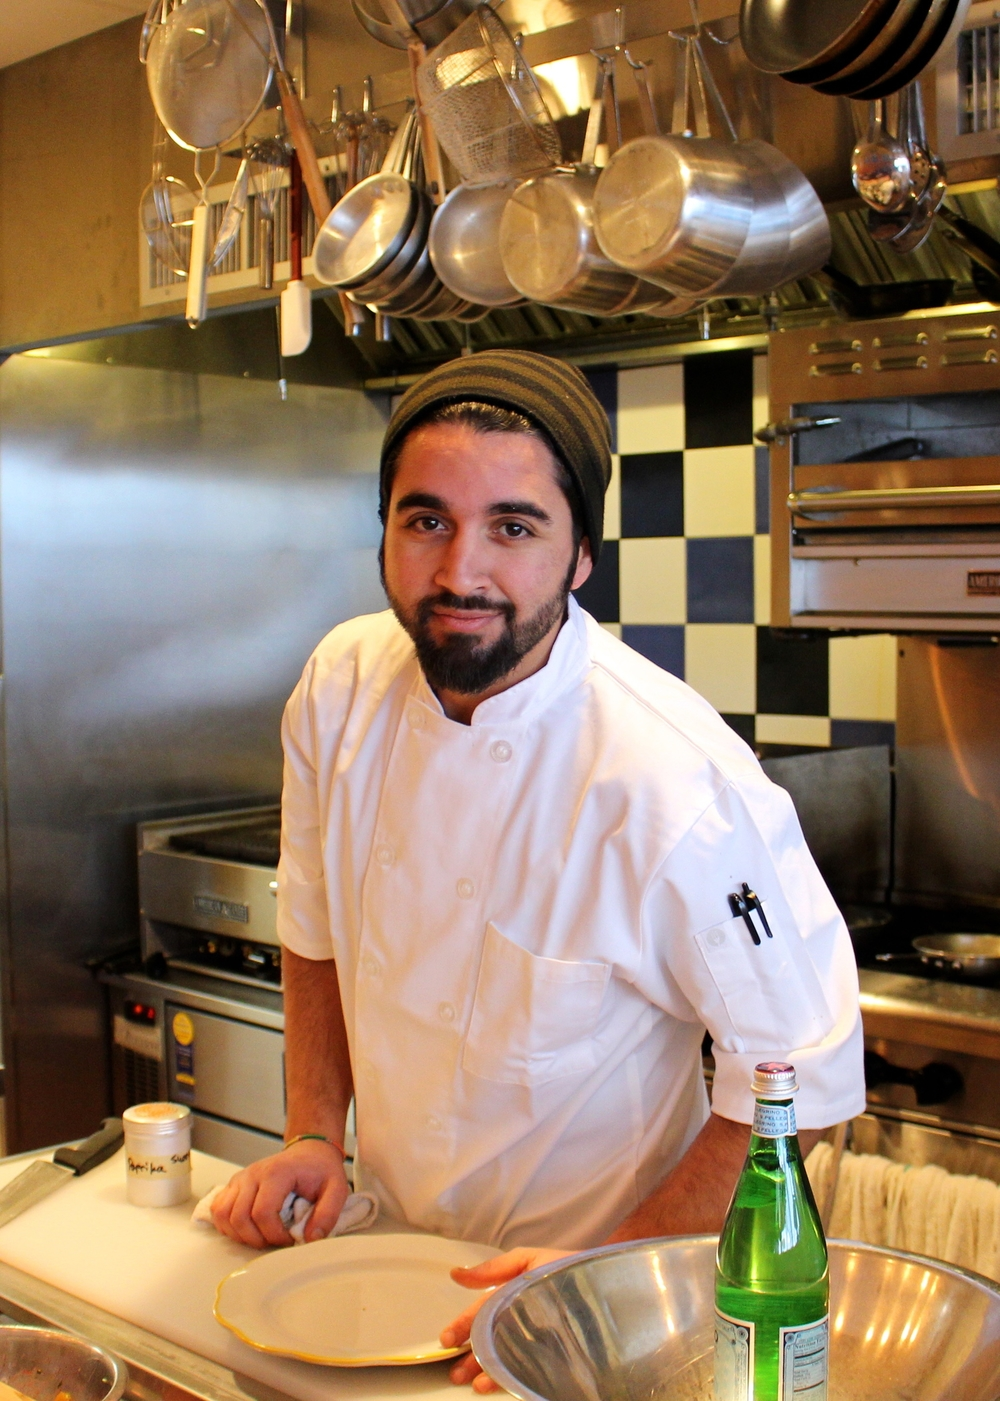 Meny Vaknin, Chef & Owner of Mish Mish